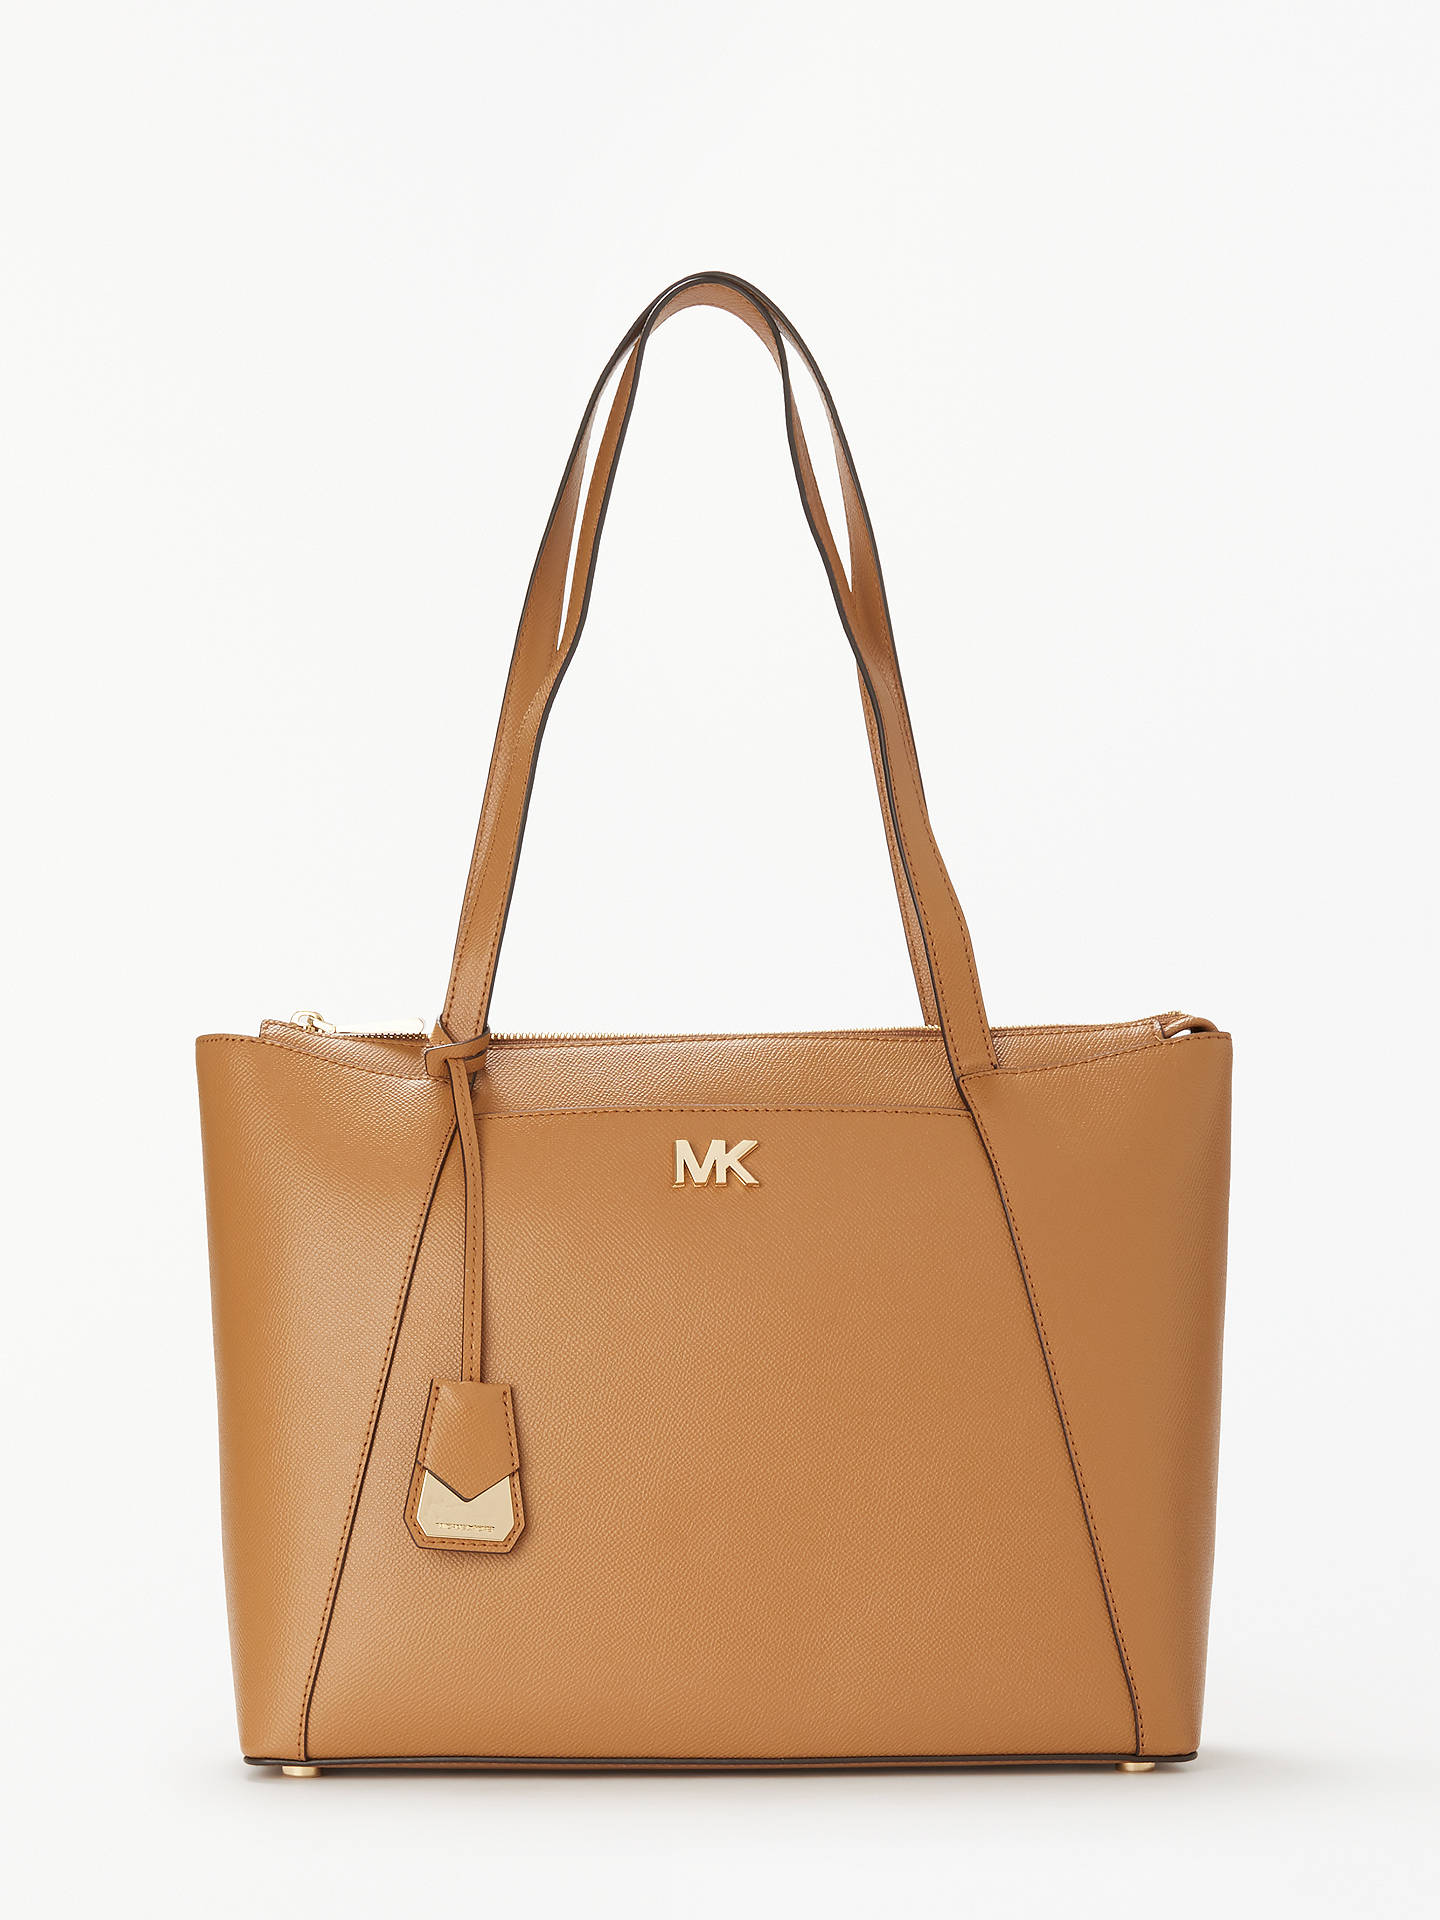 Michael Kors Mad East West Medium Leather Tote Bag Acorn Online At Johnlewis